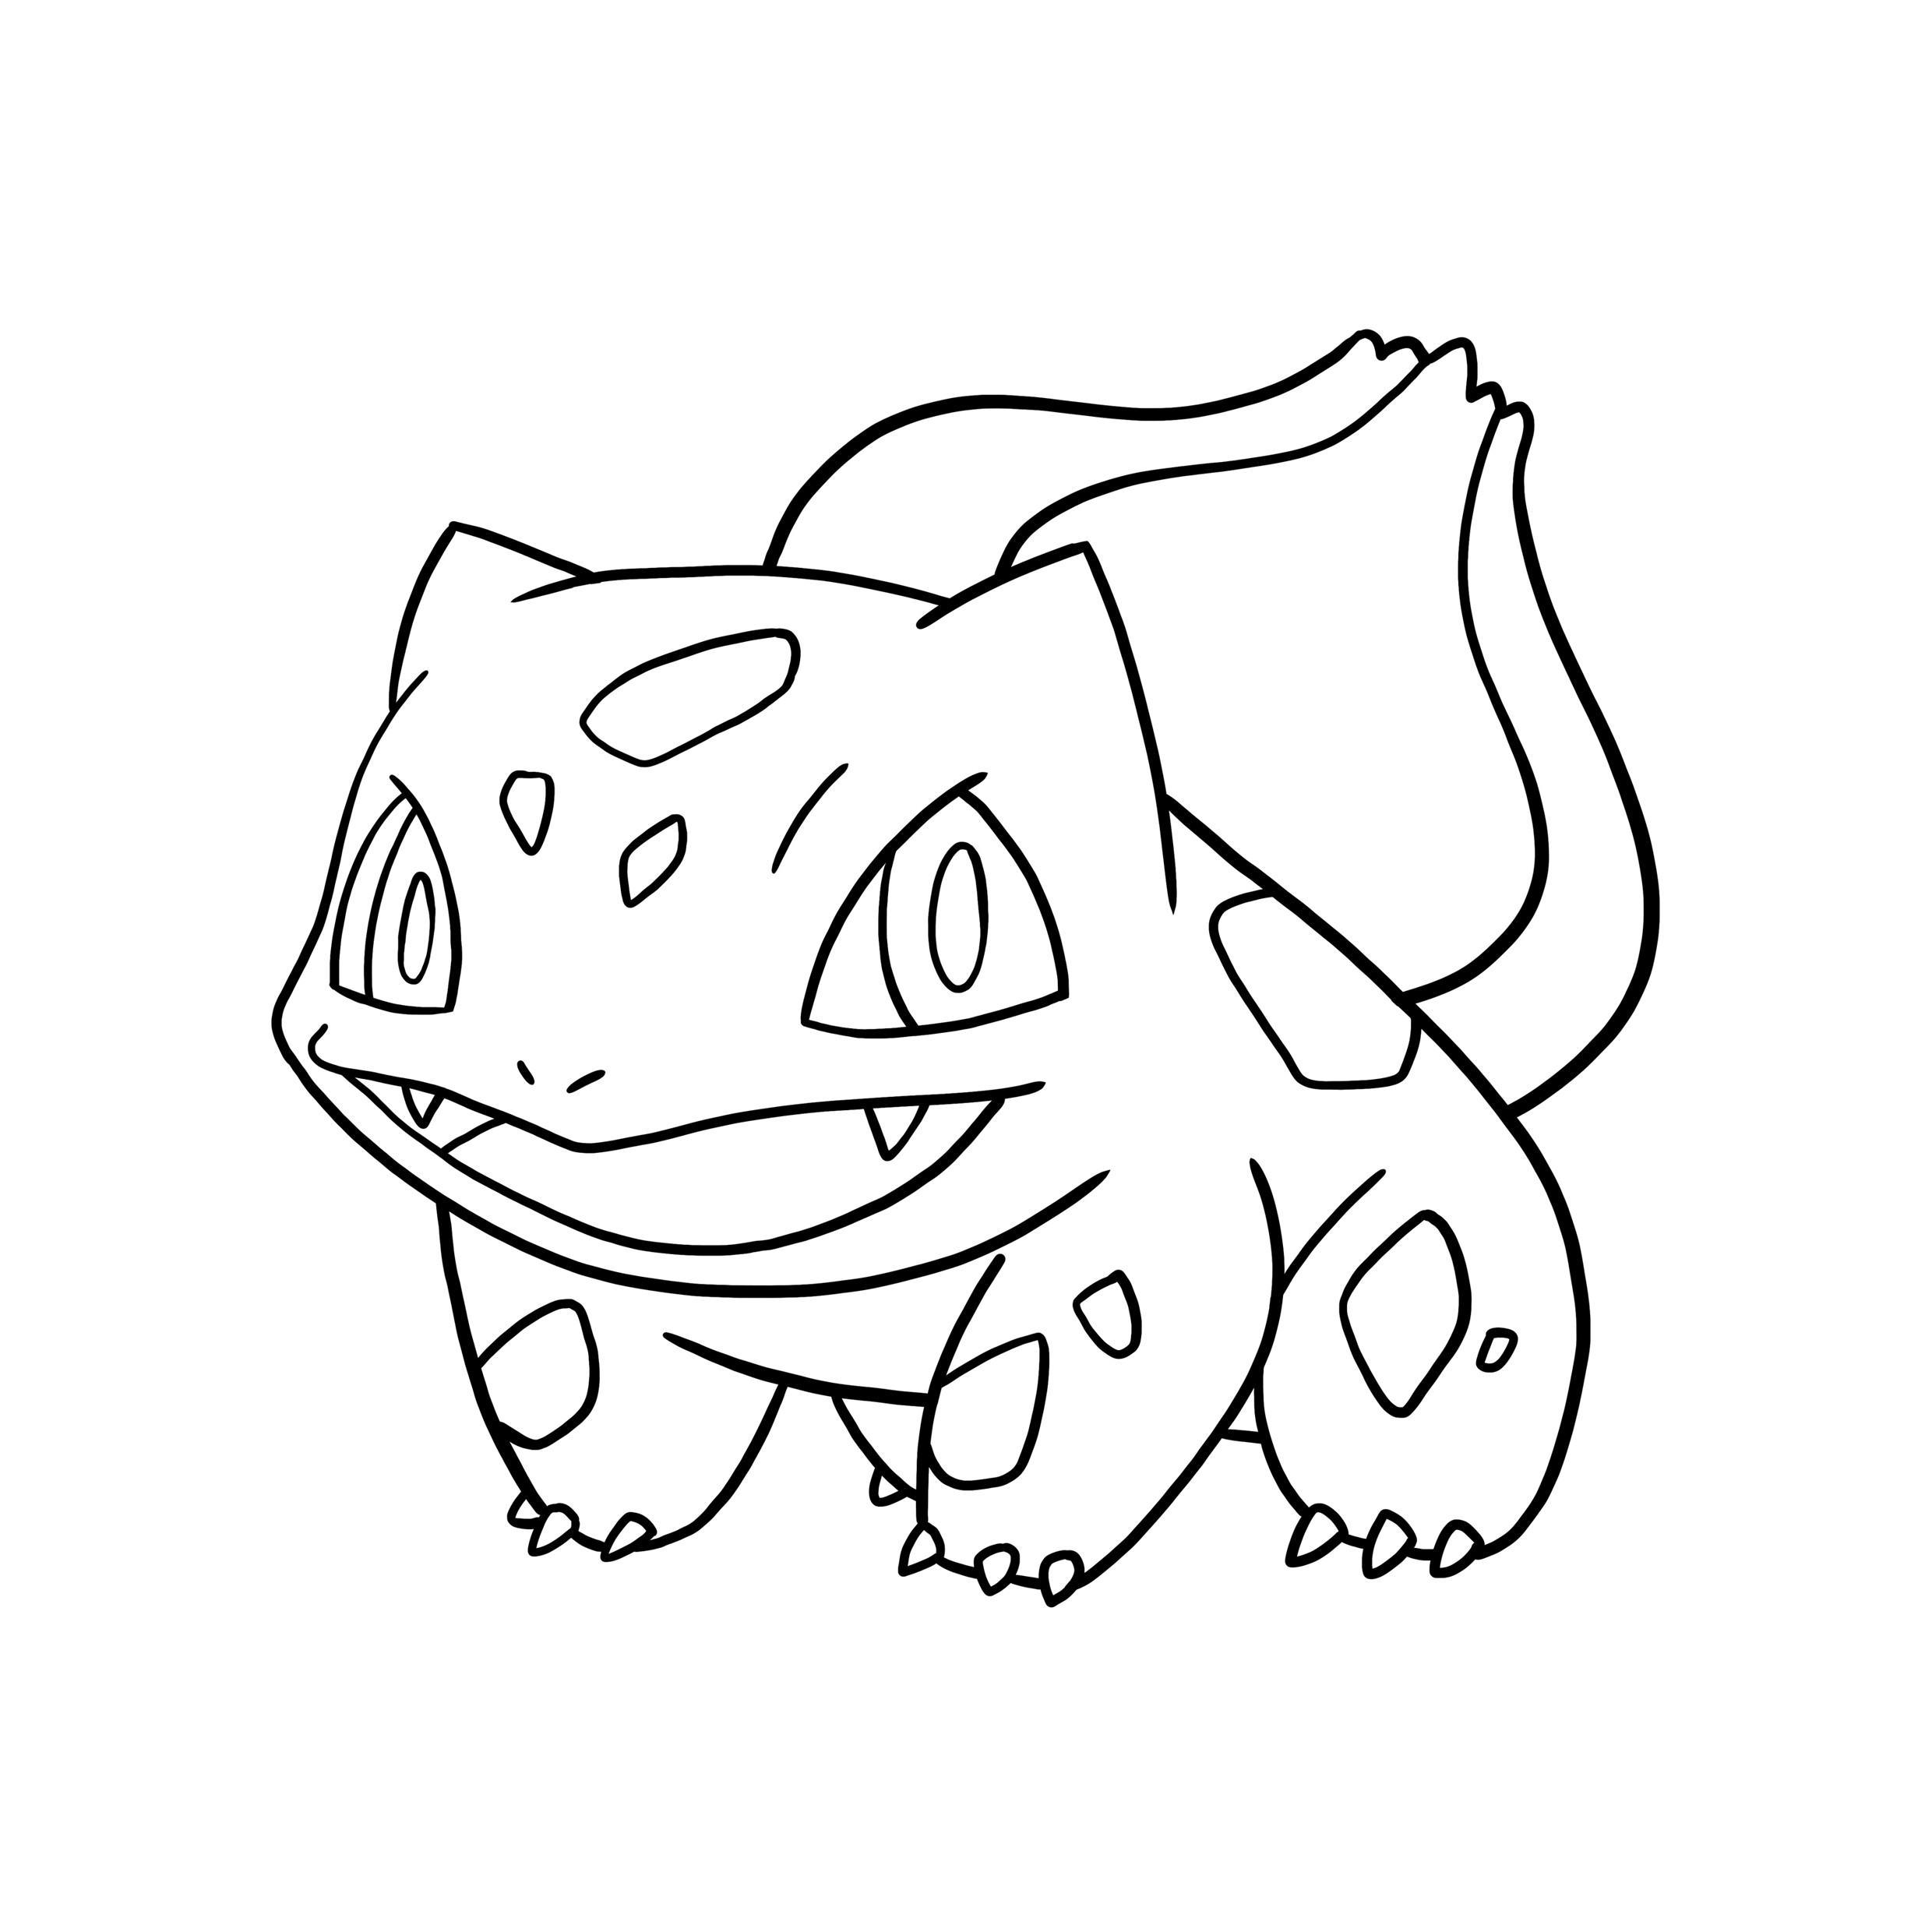 2480x2480 Luxury Charmander Coloring Page Advance